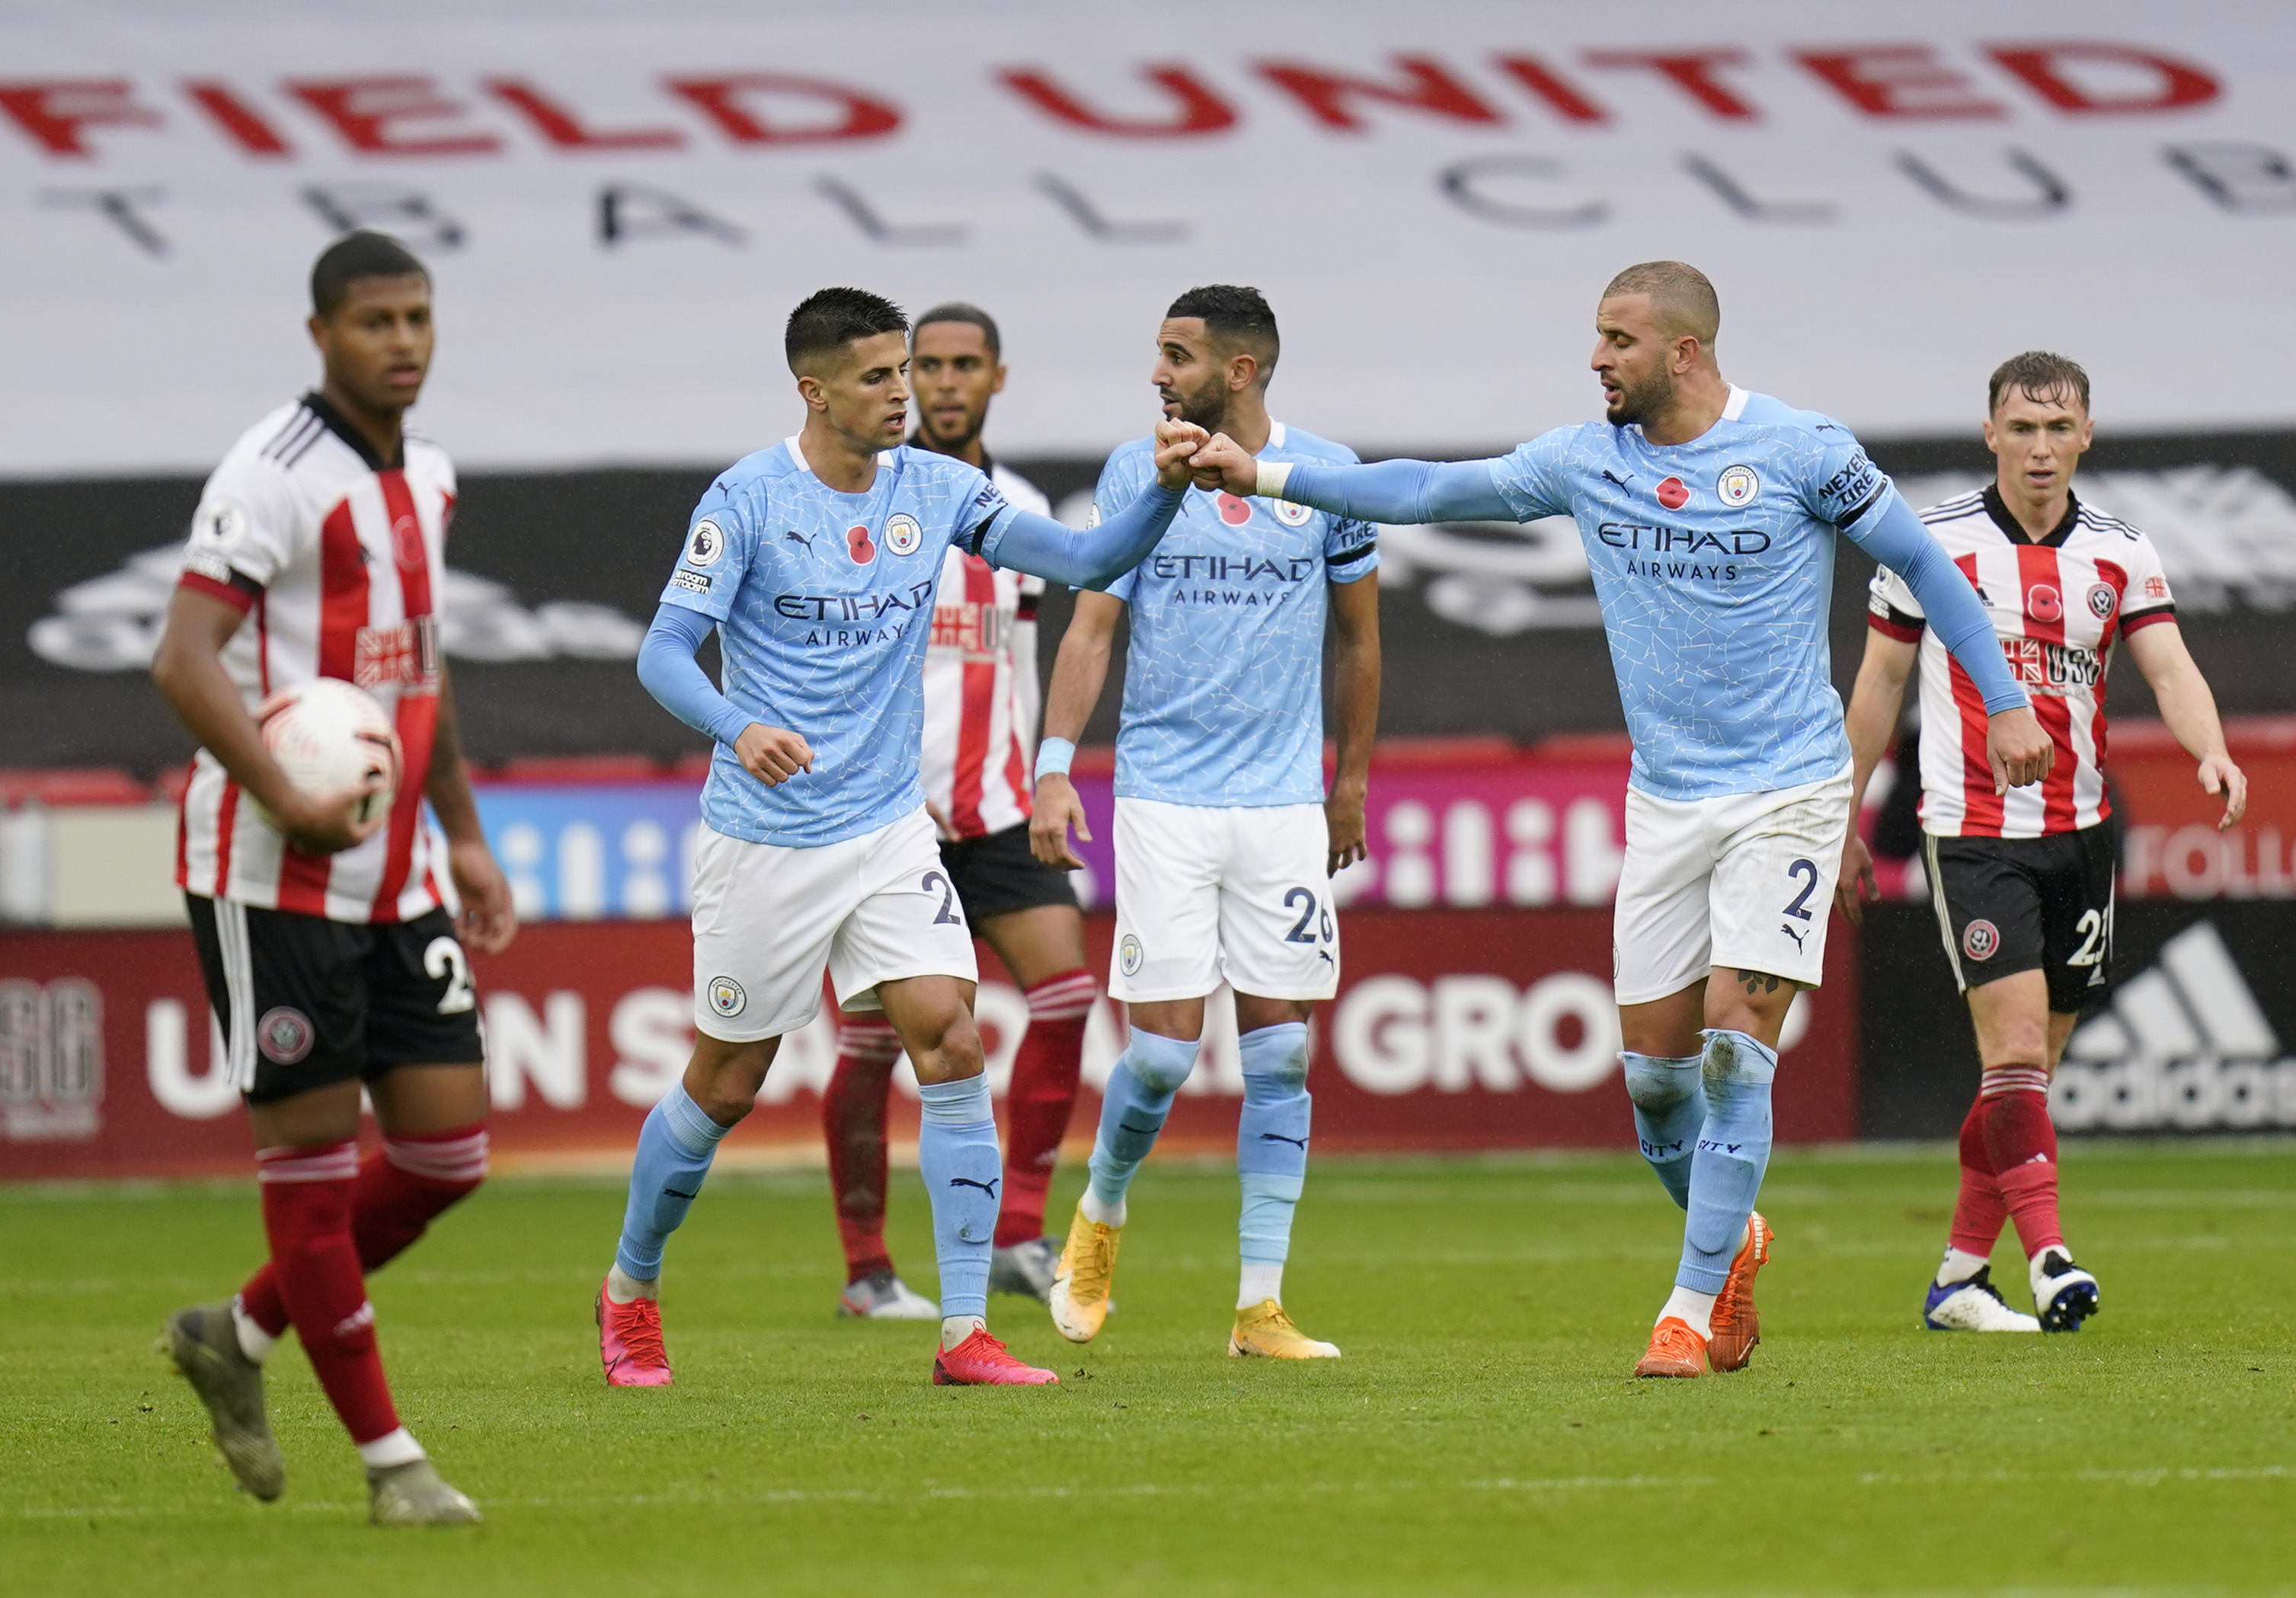 4-2-3-1 Manchester City Predicted Lineup Vs Fulham (Man City players are celebrating in the photo)